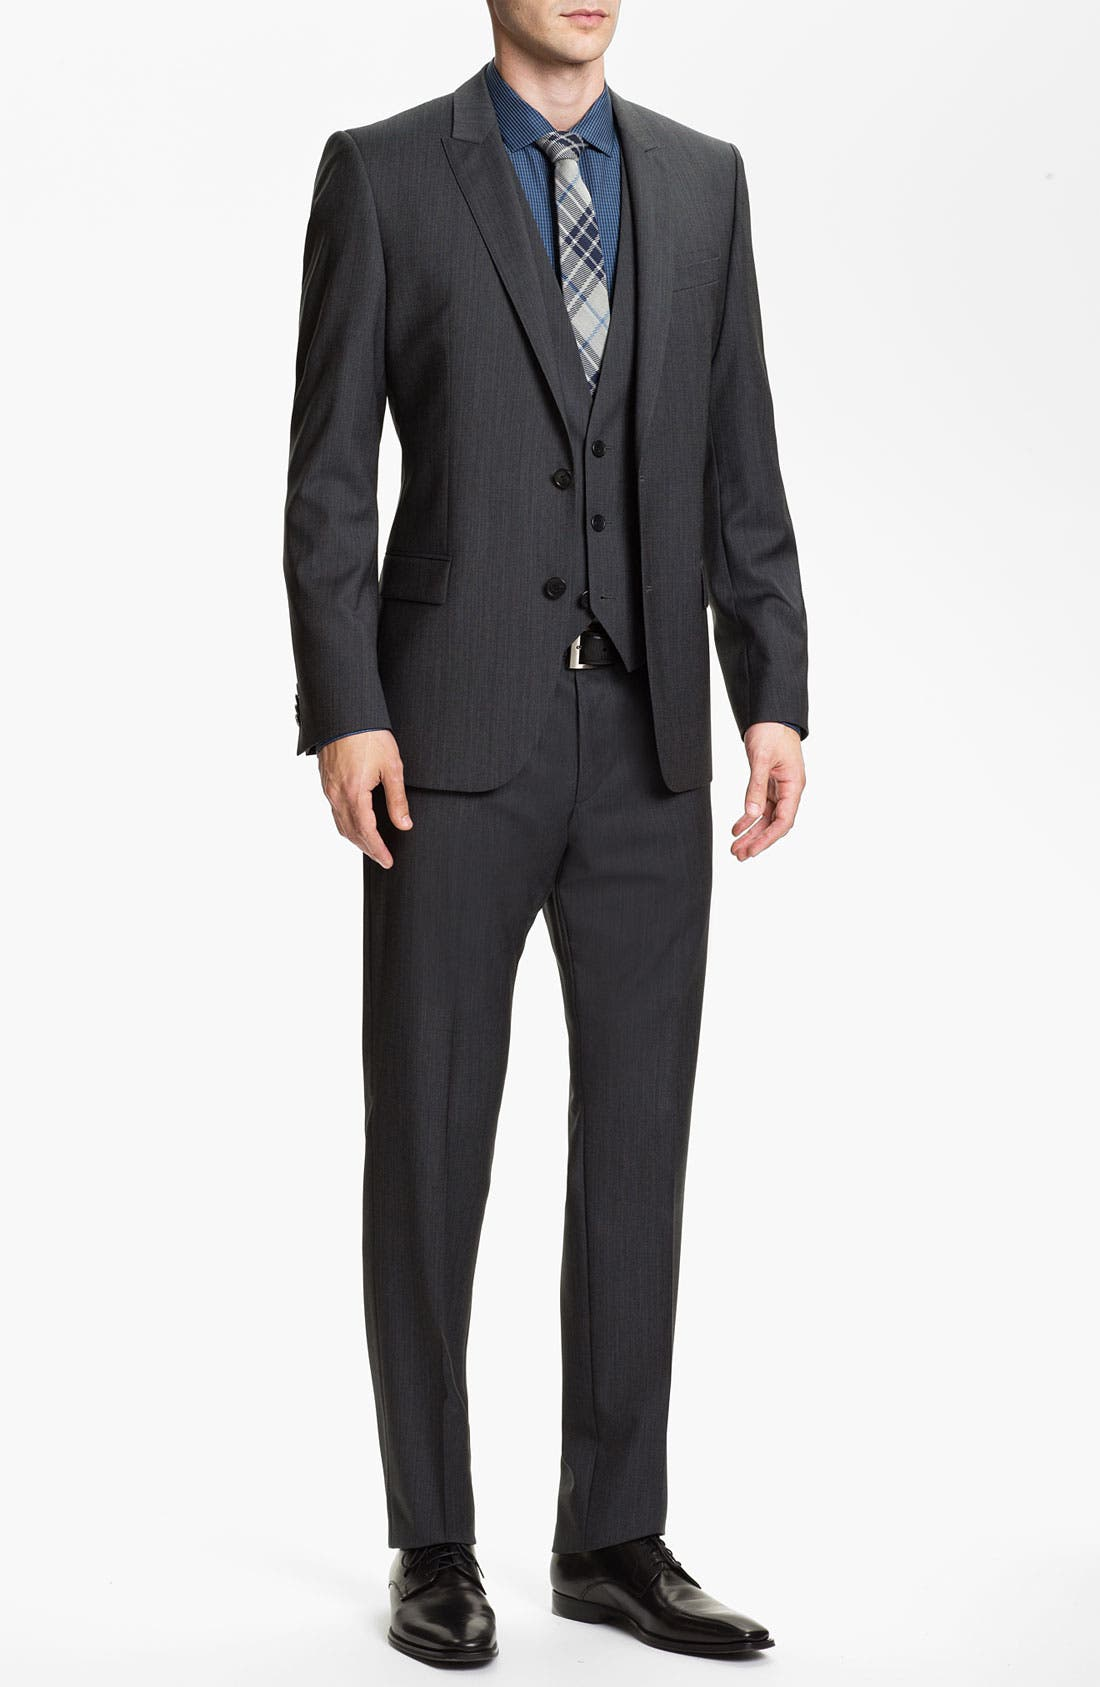 Alternate Image 1 Selected - HUGO 'Abaro/Wior/Hedit' Trim Fit Three Piece Suit